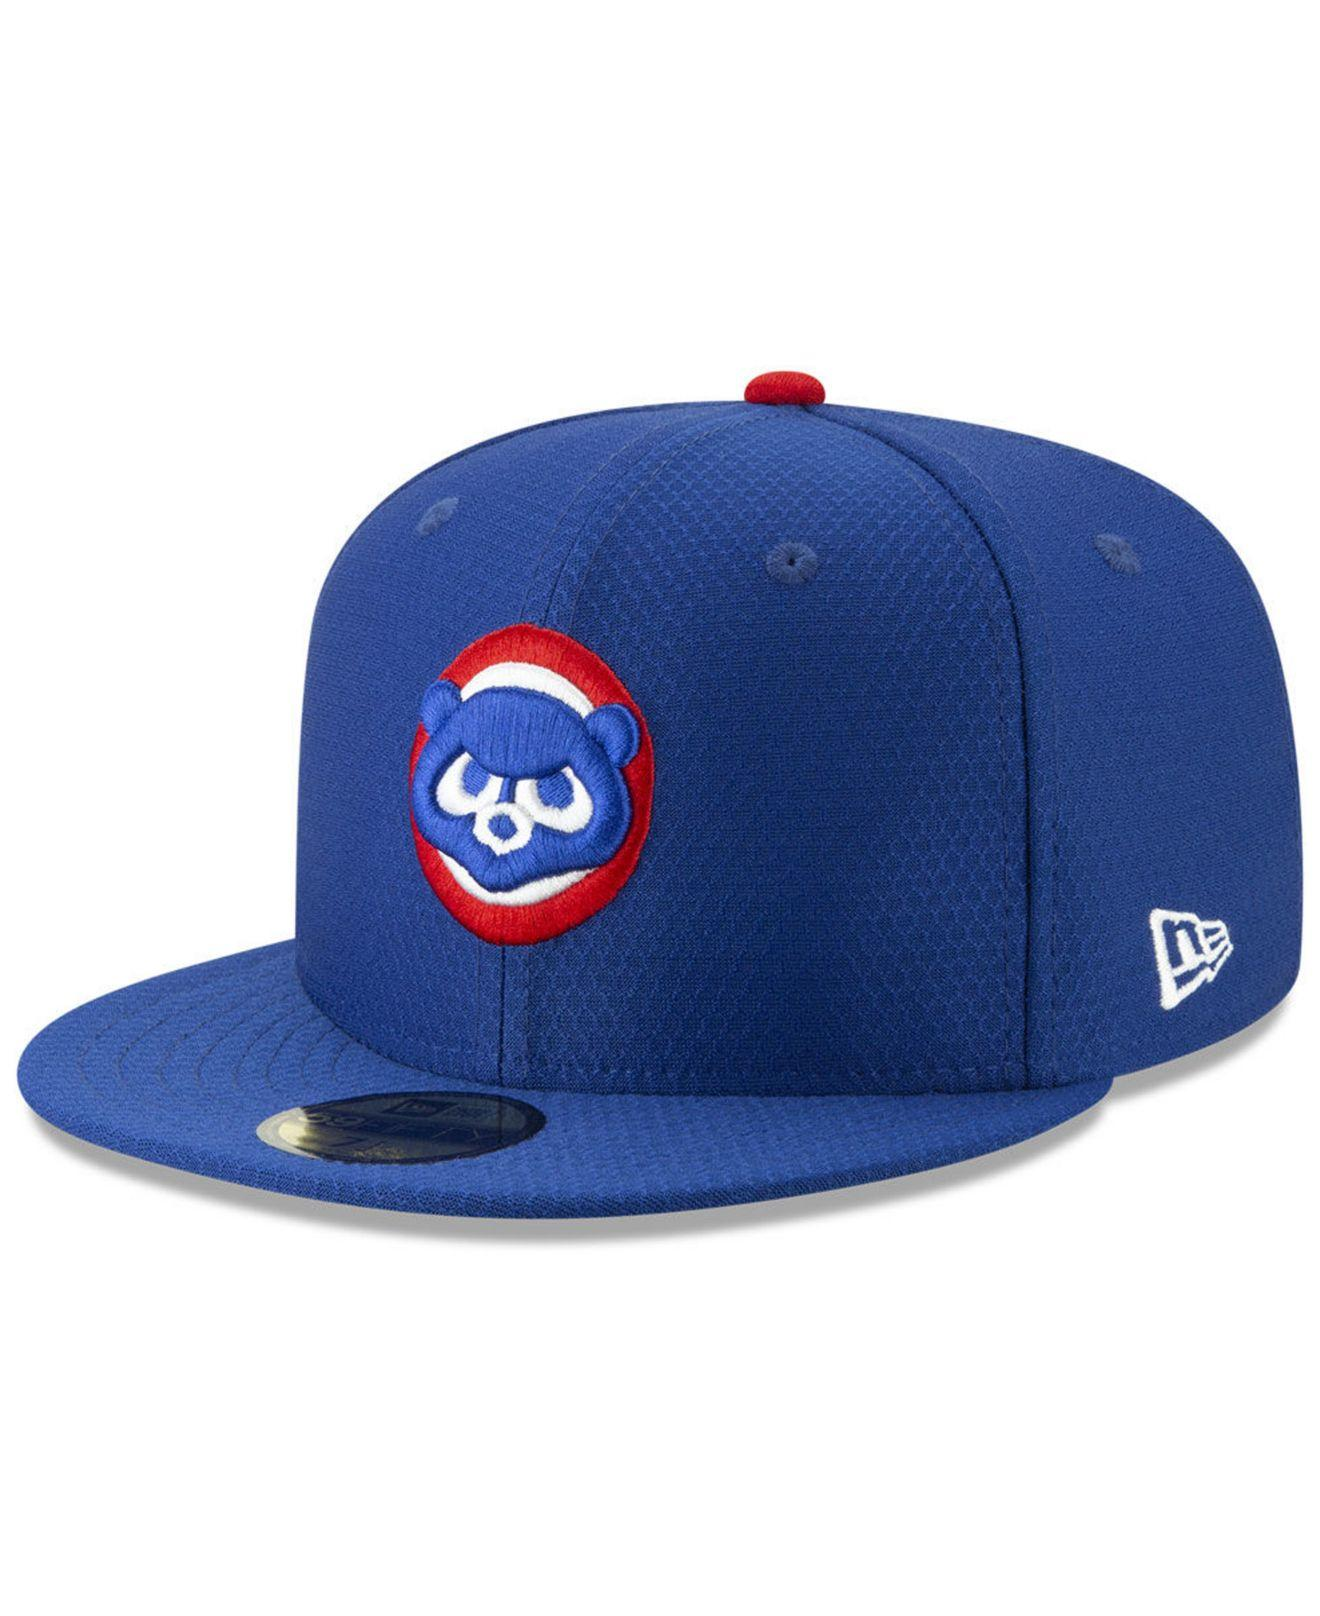 43a3ab2fa Lyst - KTZ Chicago Cubs Batting Practice 59fifty-fitted Cap in Blue ...